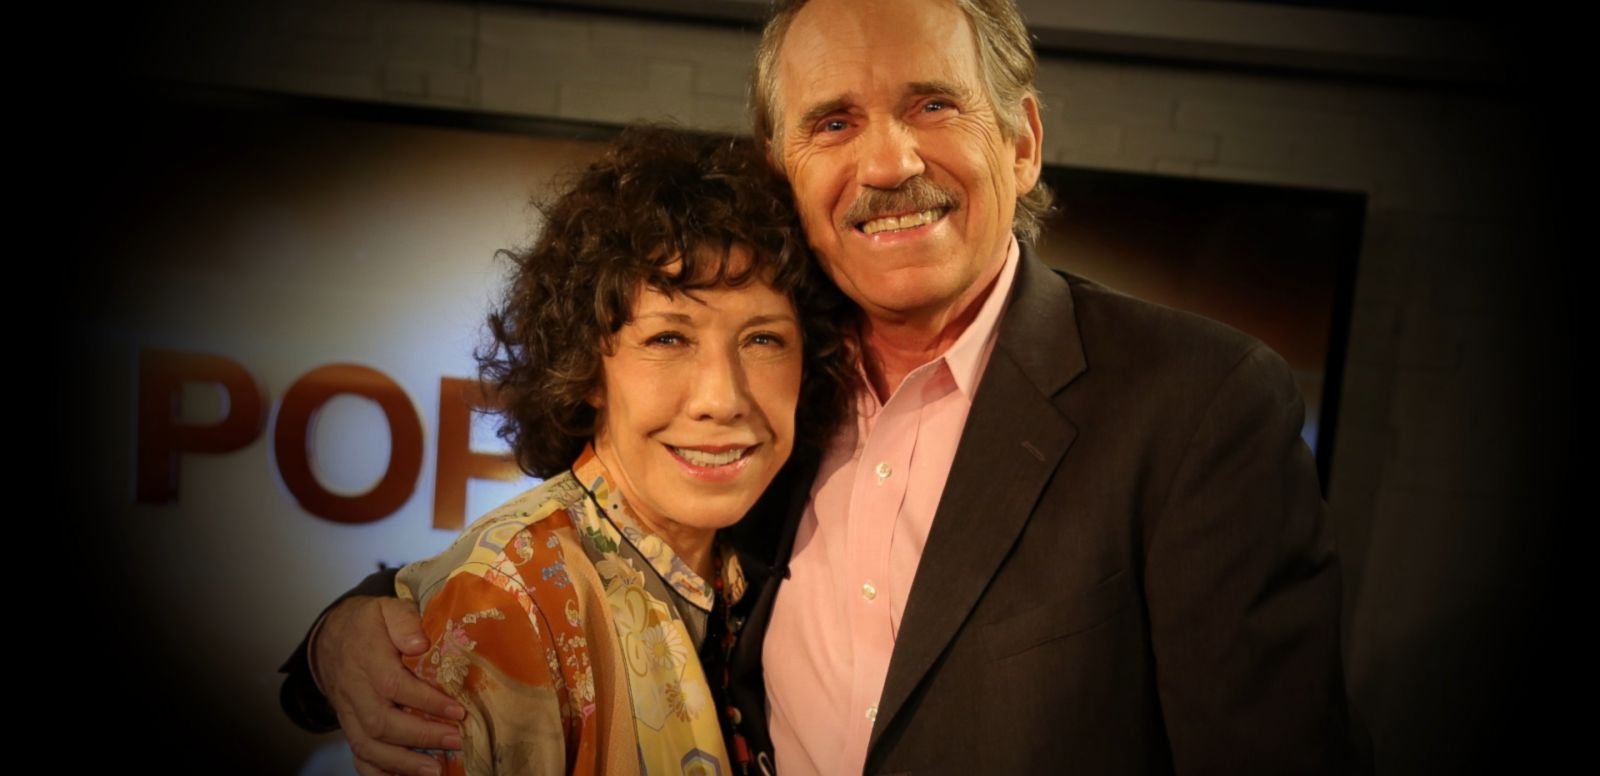 VIDEO: Lily Tomlin discusses her role in the film 'Grandma', coming out and that now infamous fight with director David O. Russell